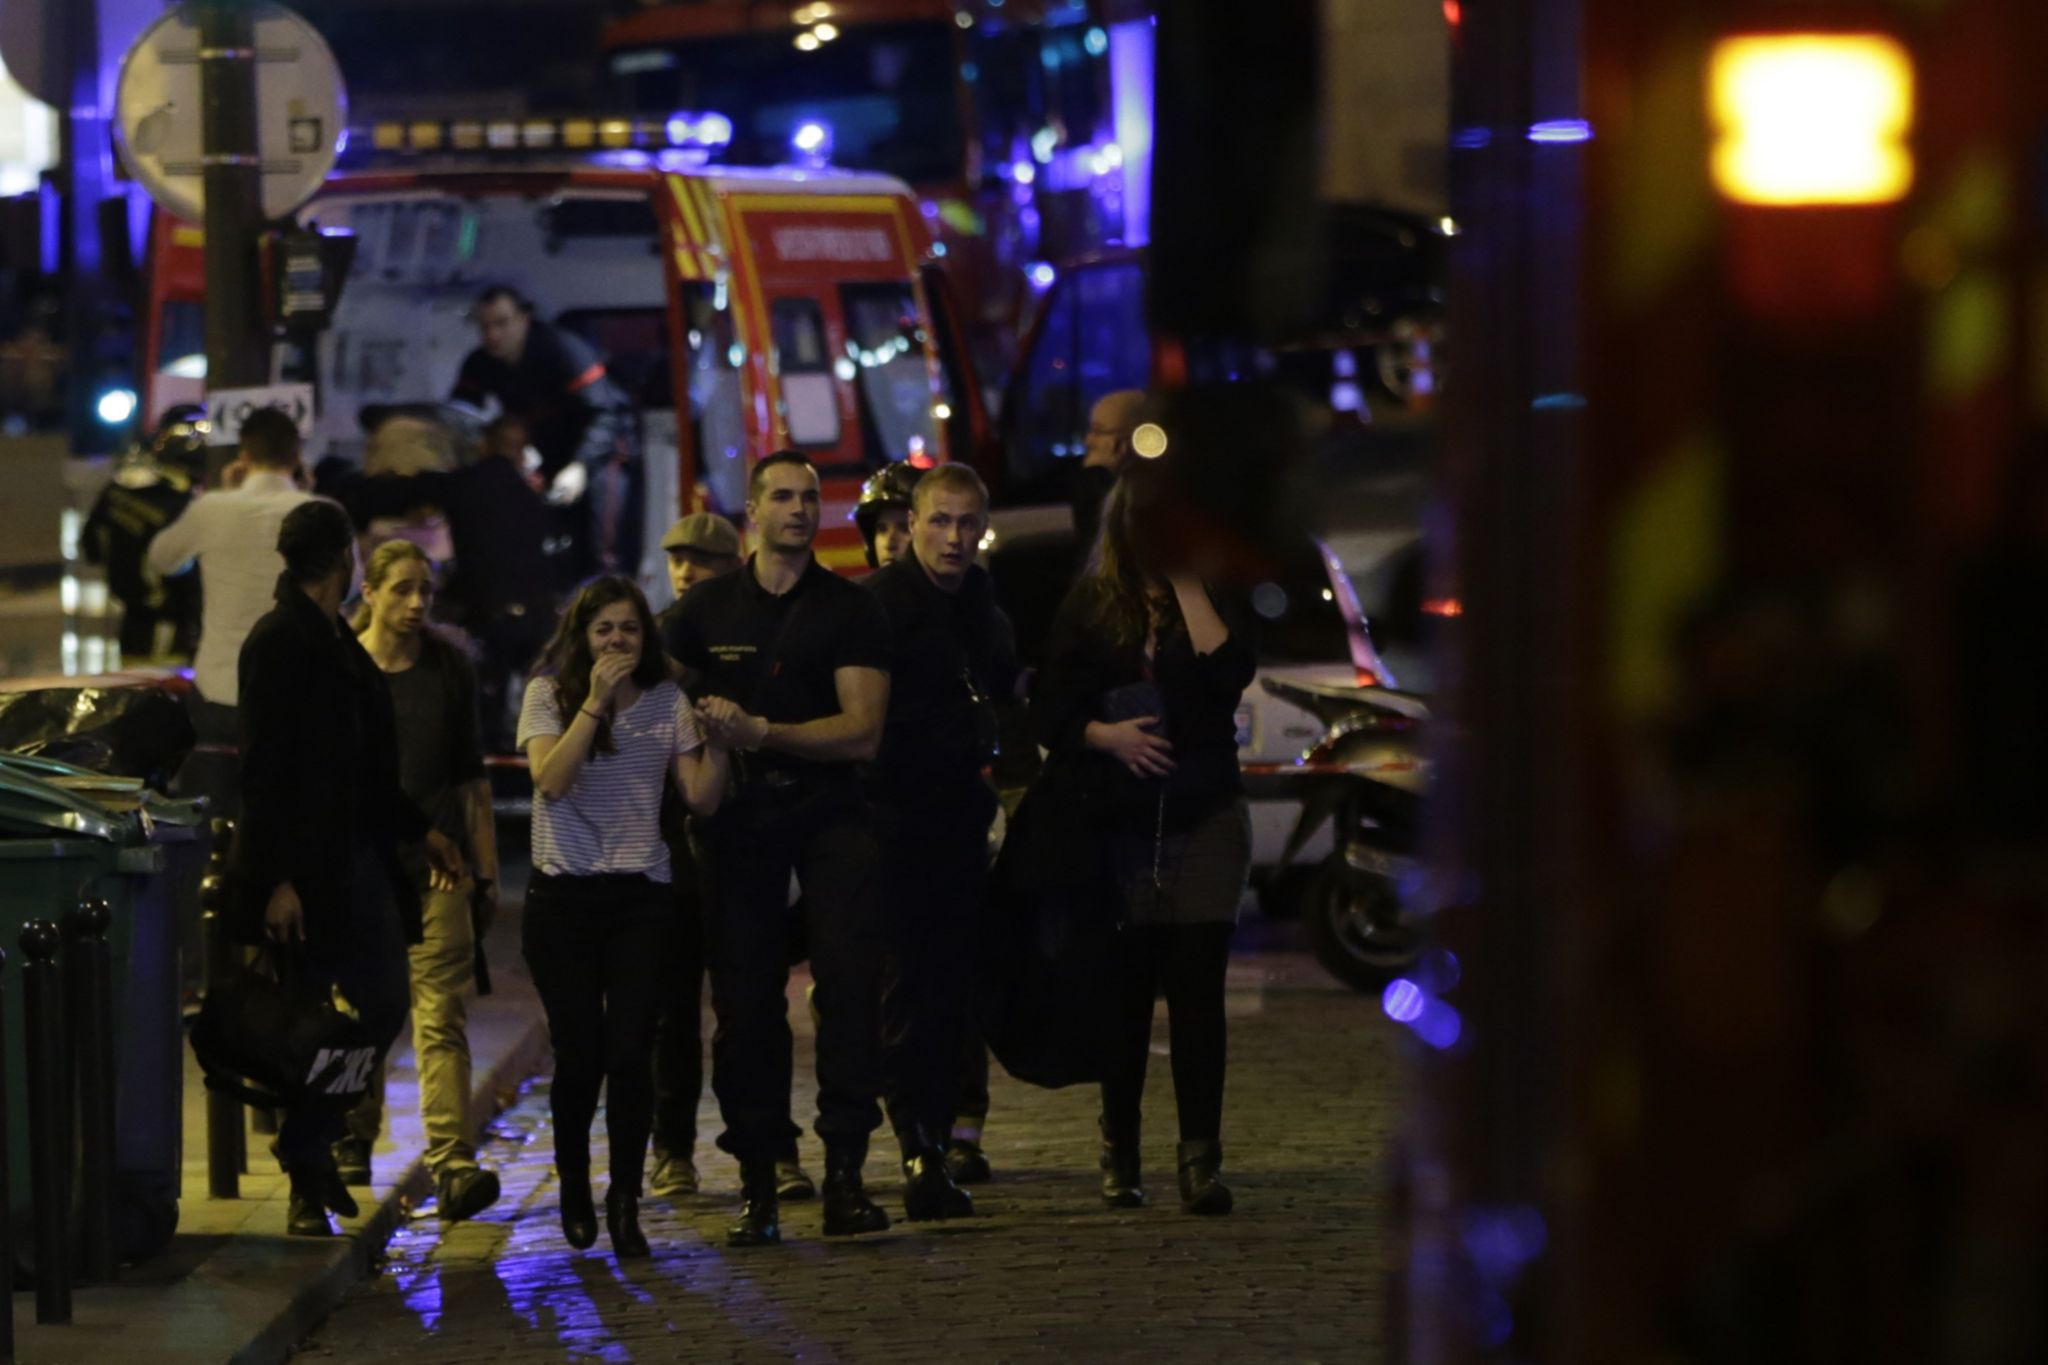 People being moved to safety from Bataclan concert hall